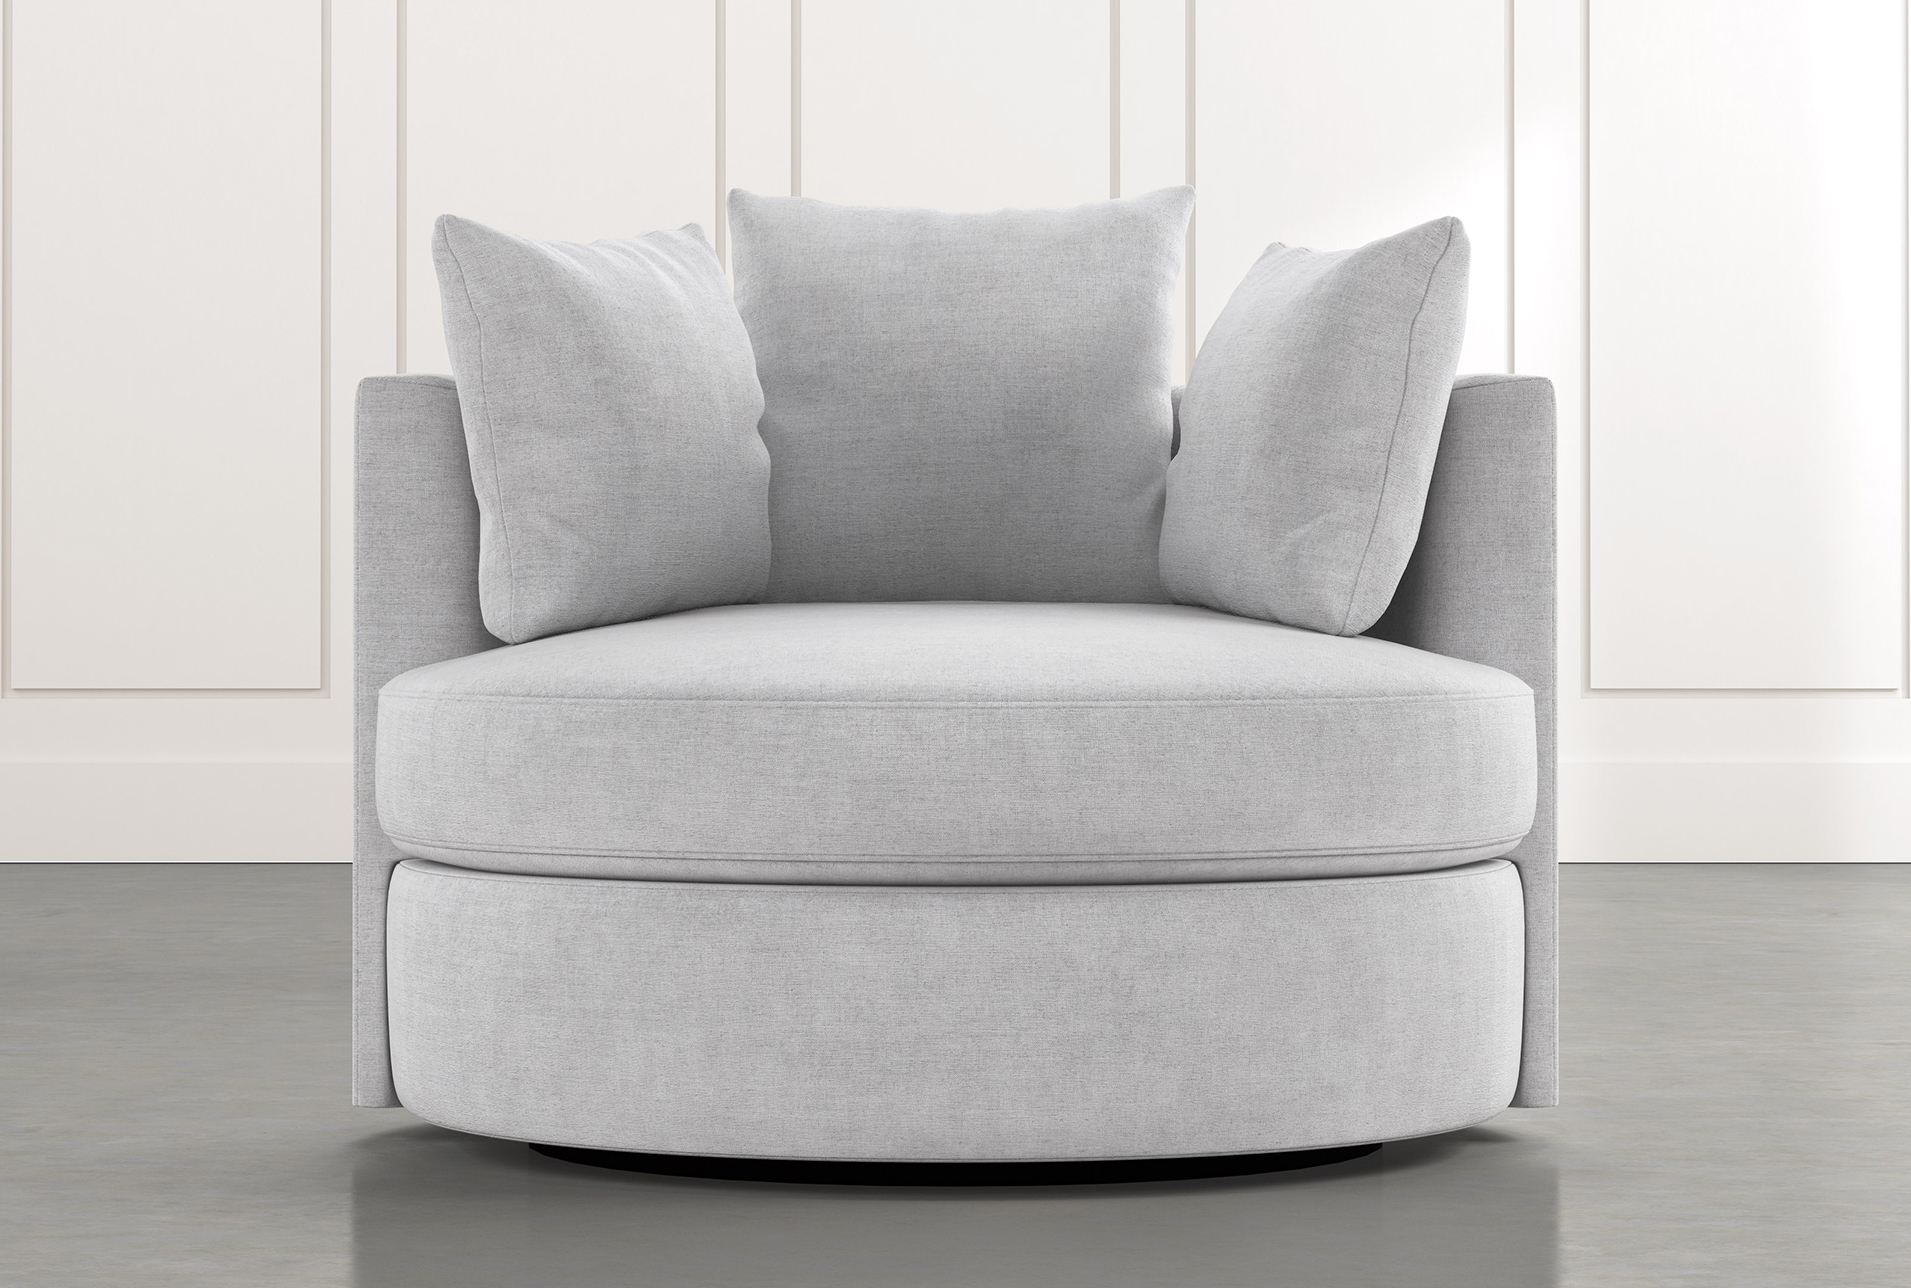 Pin By Christina Nielsen On Furniture Living Room Chairs Furniture Round Swivel Chair